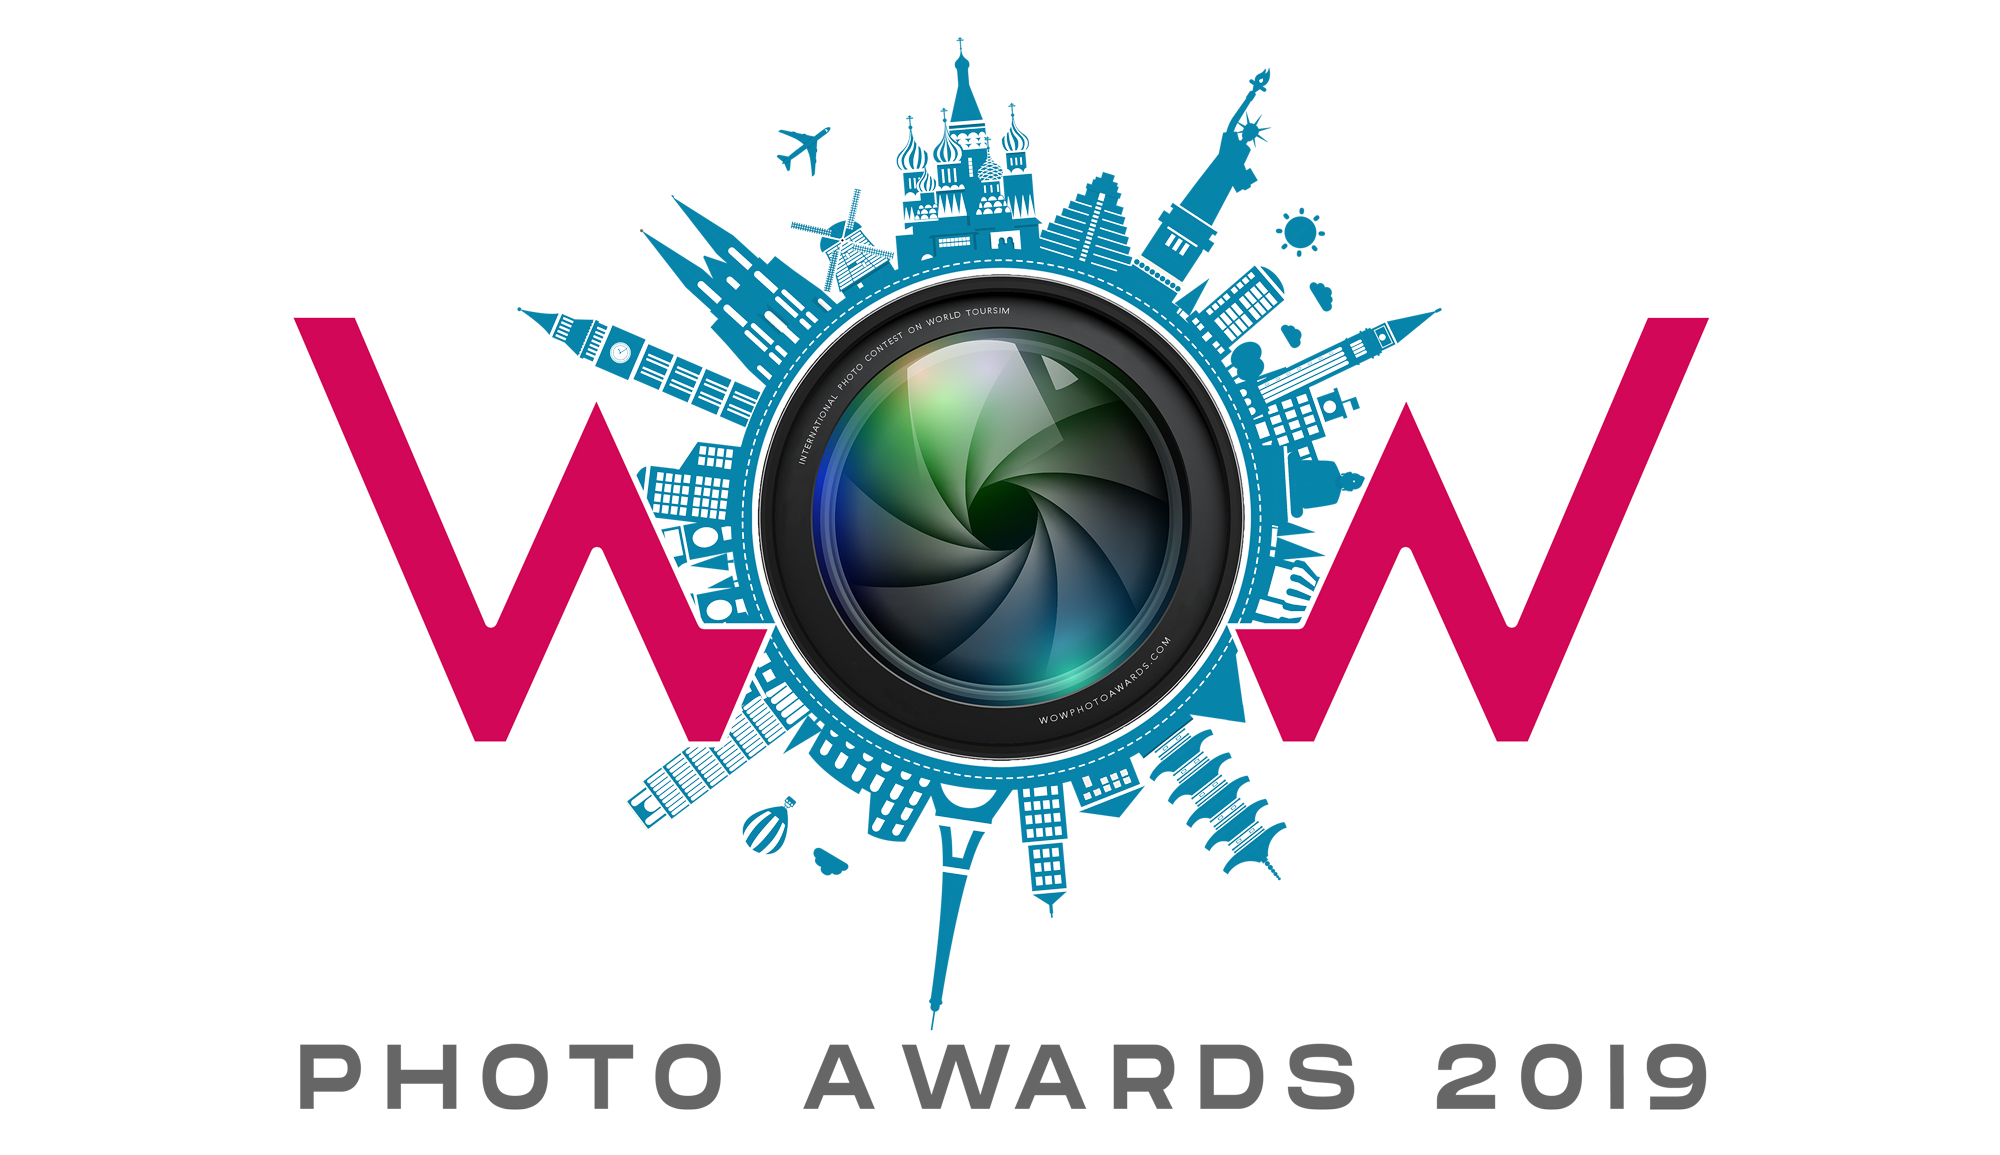 WOW PHOTO AWARDS 2019 – Ultimate Photo Contest on World Tourism - logo